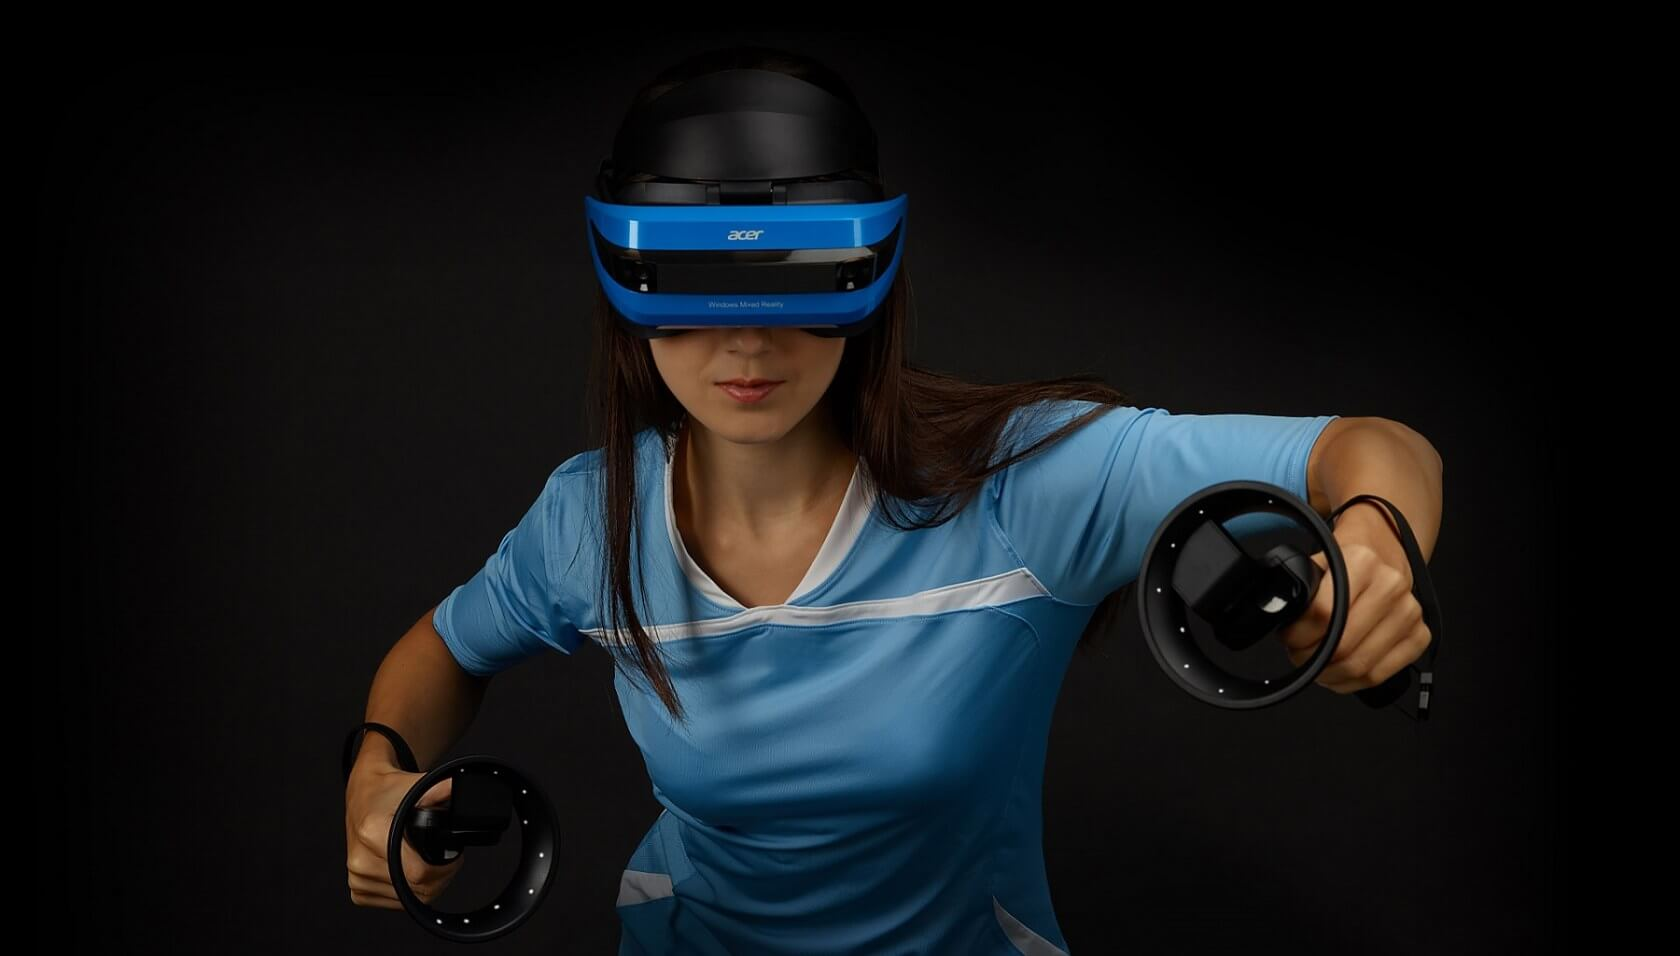 Microsoft says it has no plans for virtual reality on Xbox One